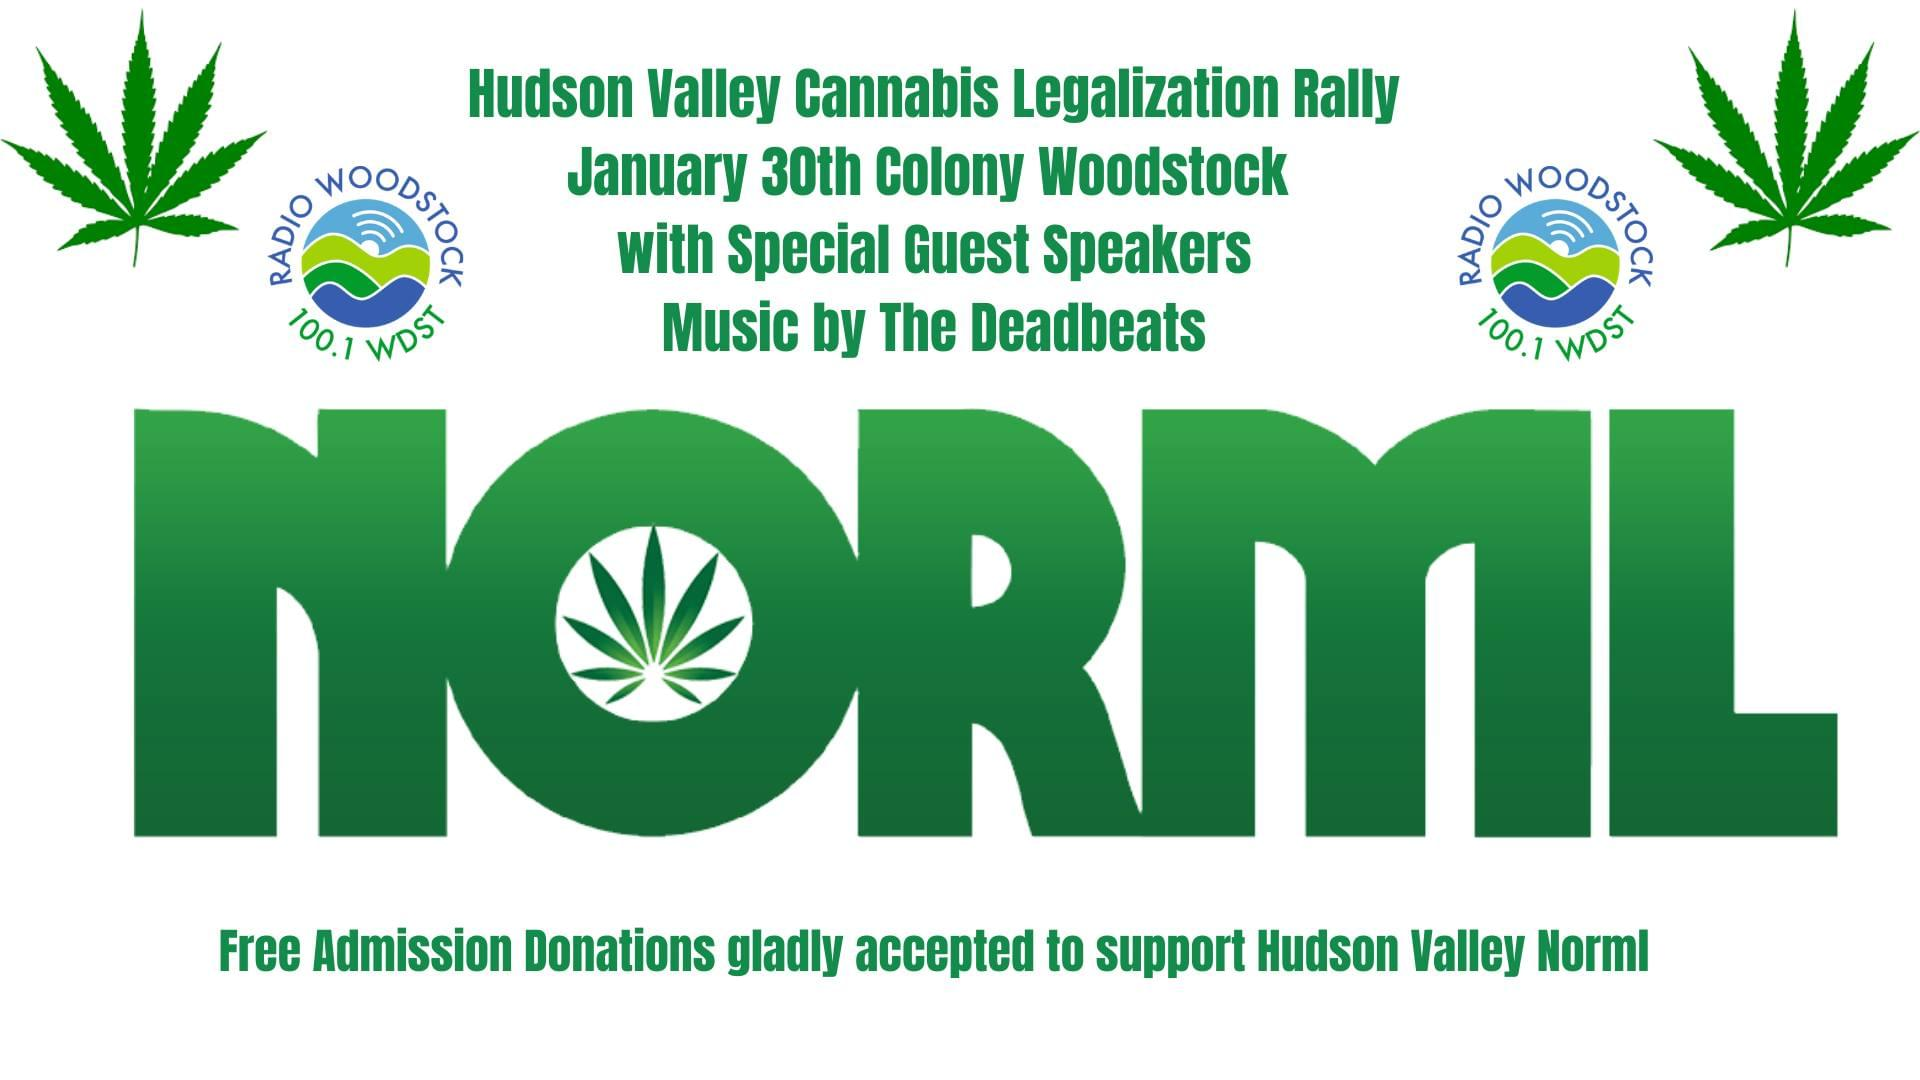 Hudson Valley Cannabis Legalization NORML Rally!